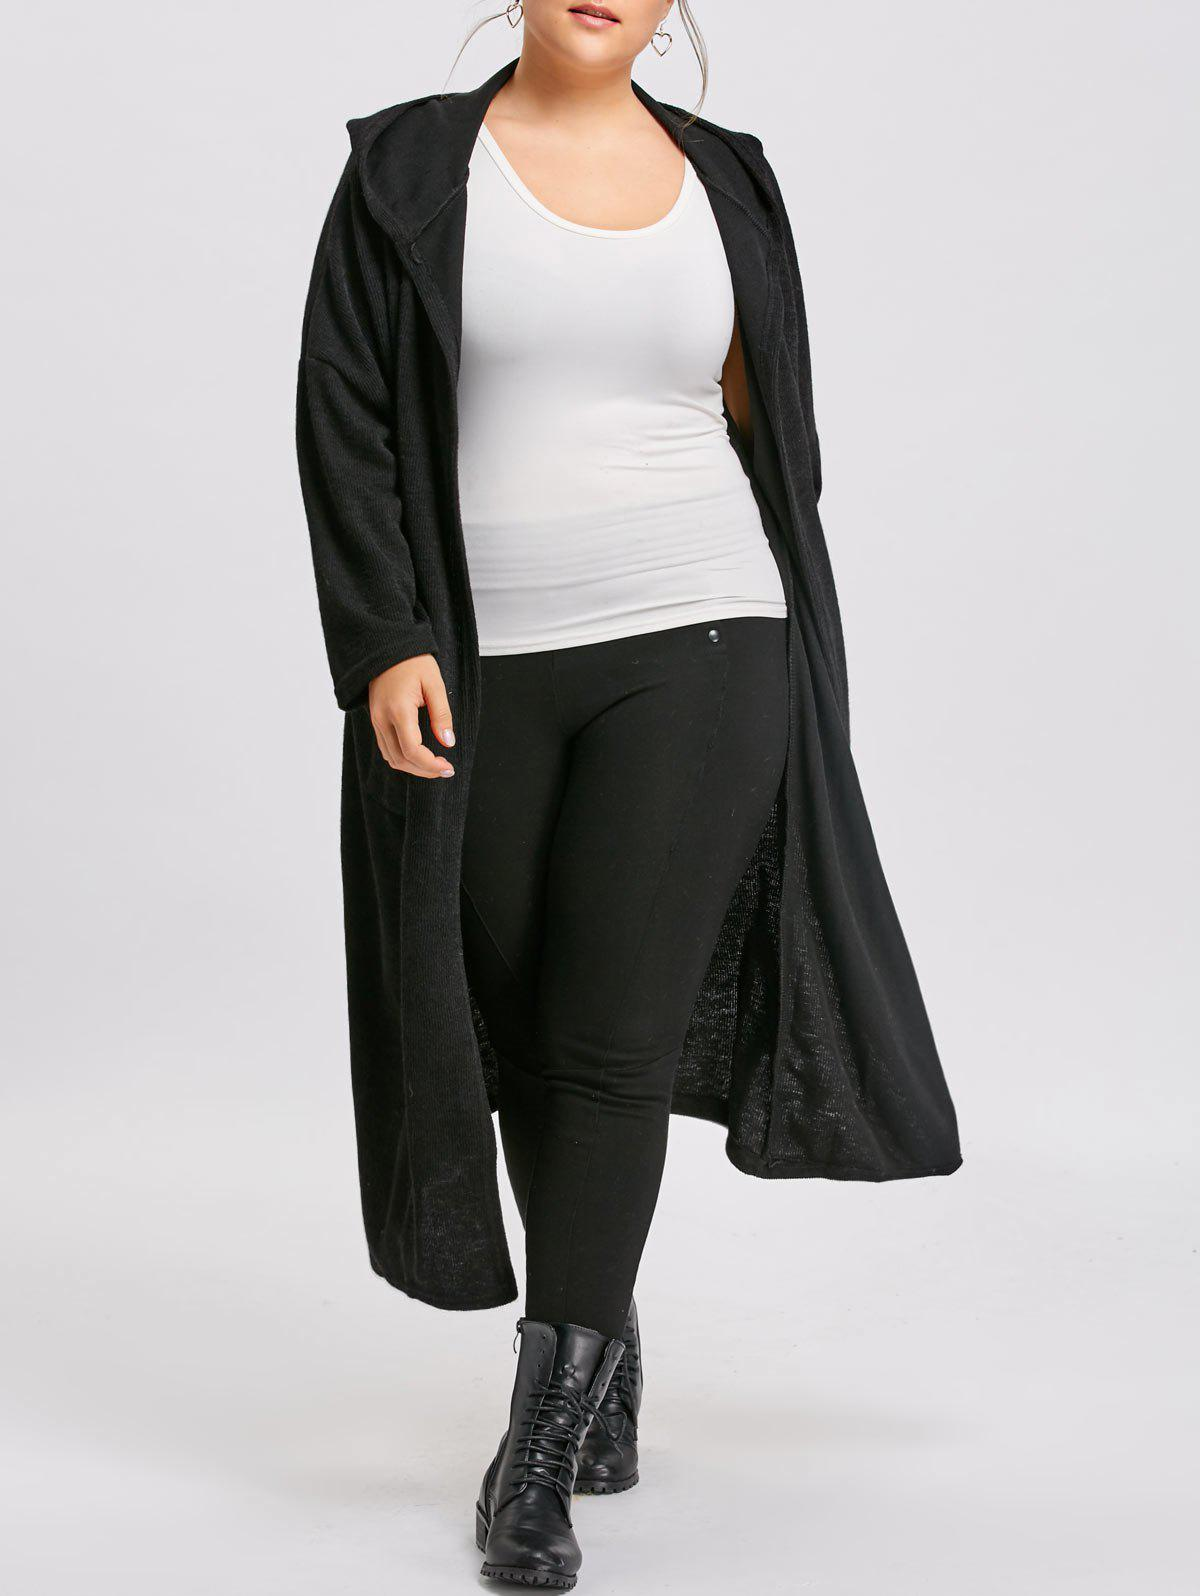 Pockets Plus Size Long Hooded CoatWOMEN<br><br>Size: XL; Color: BLACK; Clothes Type: Trench; Material: Cotton Blends,Polyester; Type: Slim; Shirt Length: Long; Sleeve Length: Full; Collar: Hooded; Pattern Type: Solid; Embellishment: Front Pocket; Style: Fashion; Season: Fall,Winter; Weight: 0.8000kg; Package Contents: 1 x Coat;